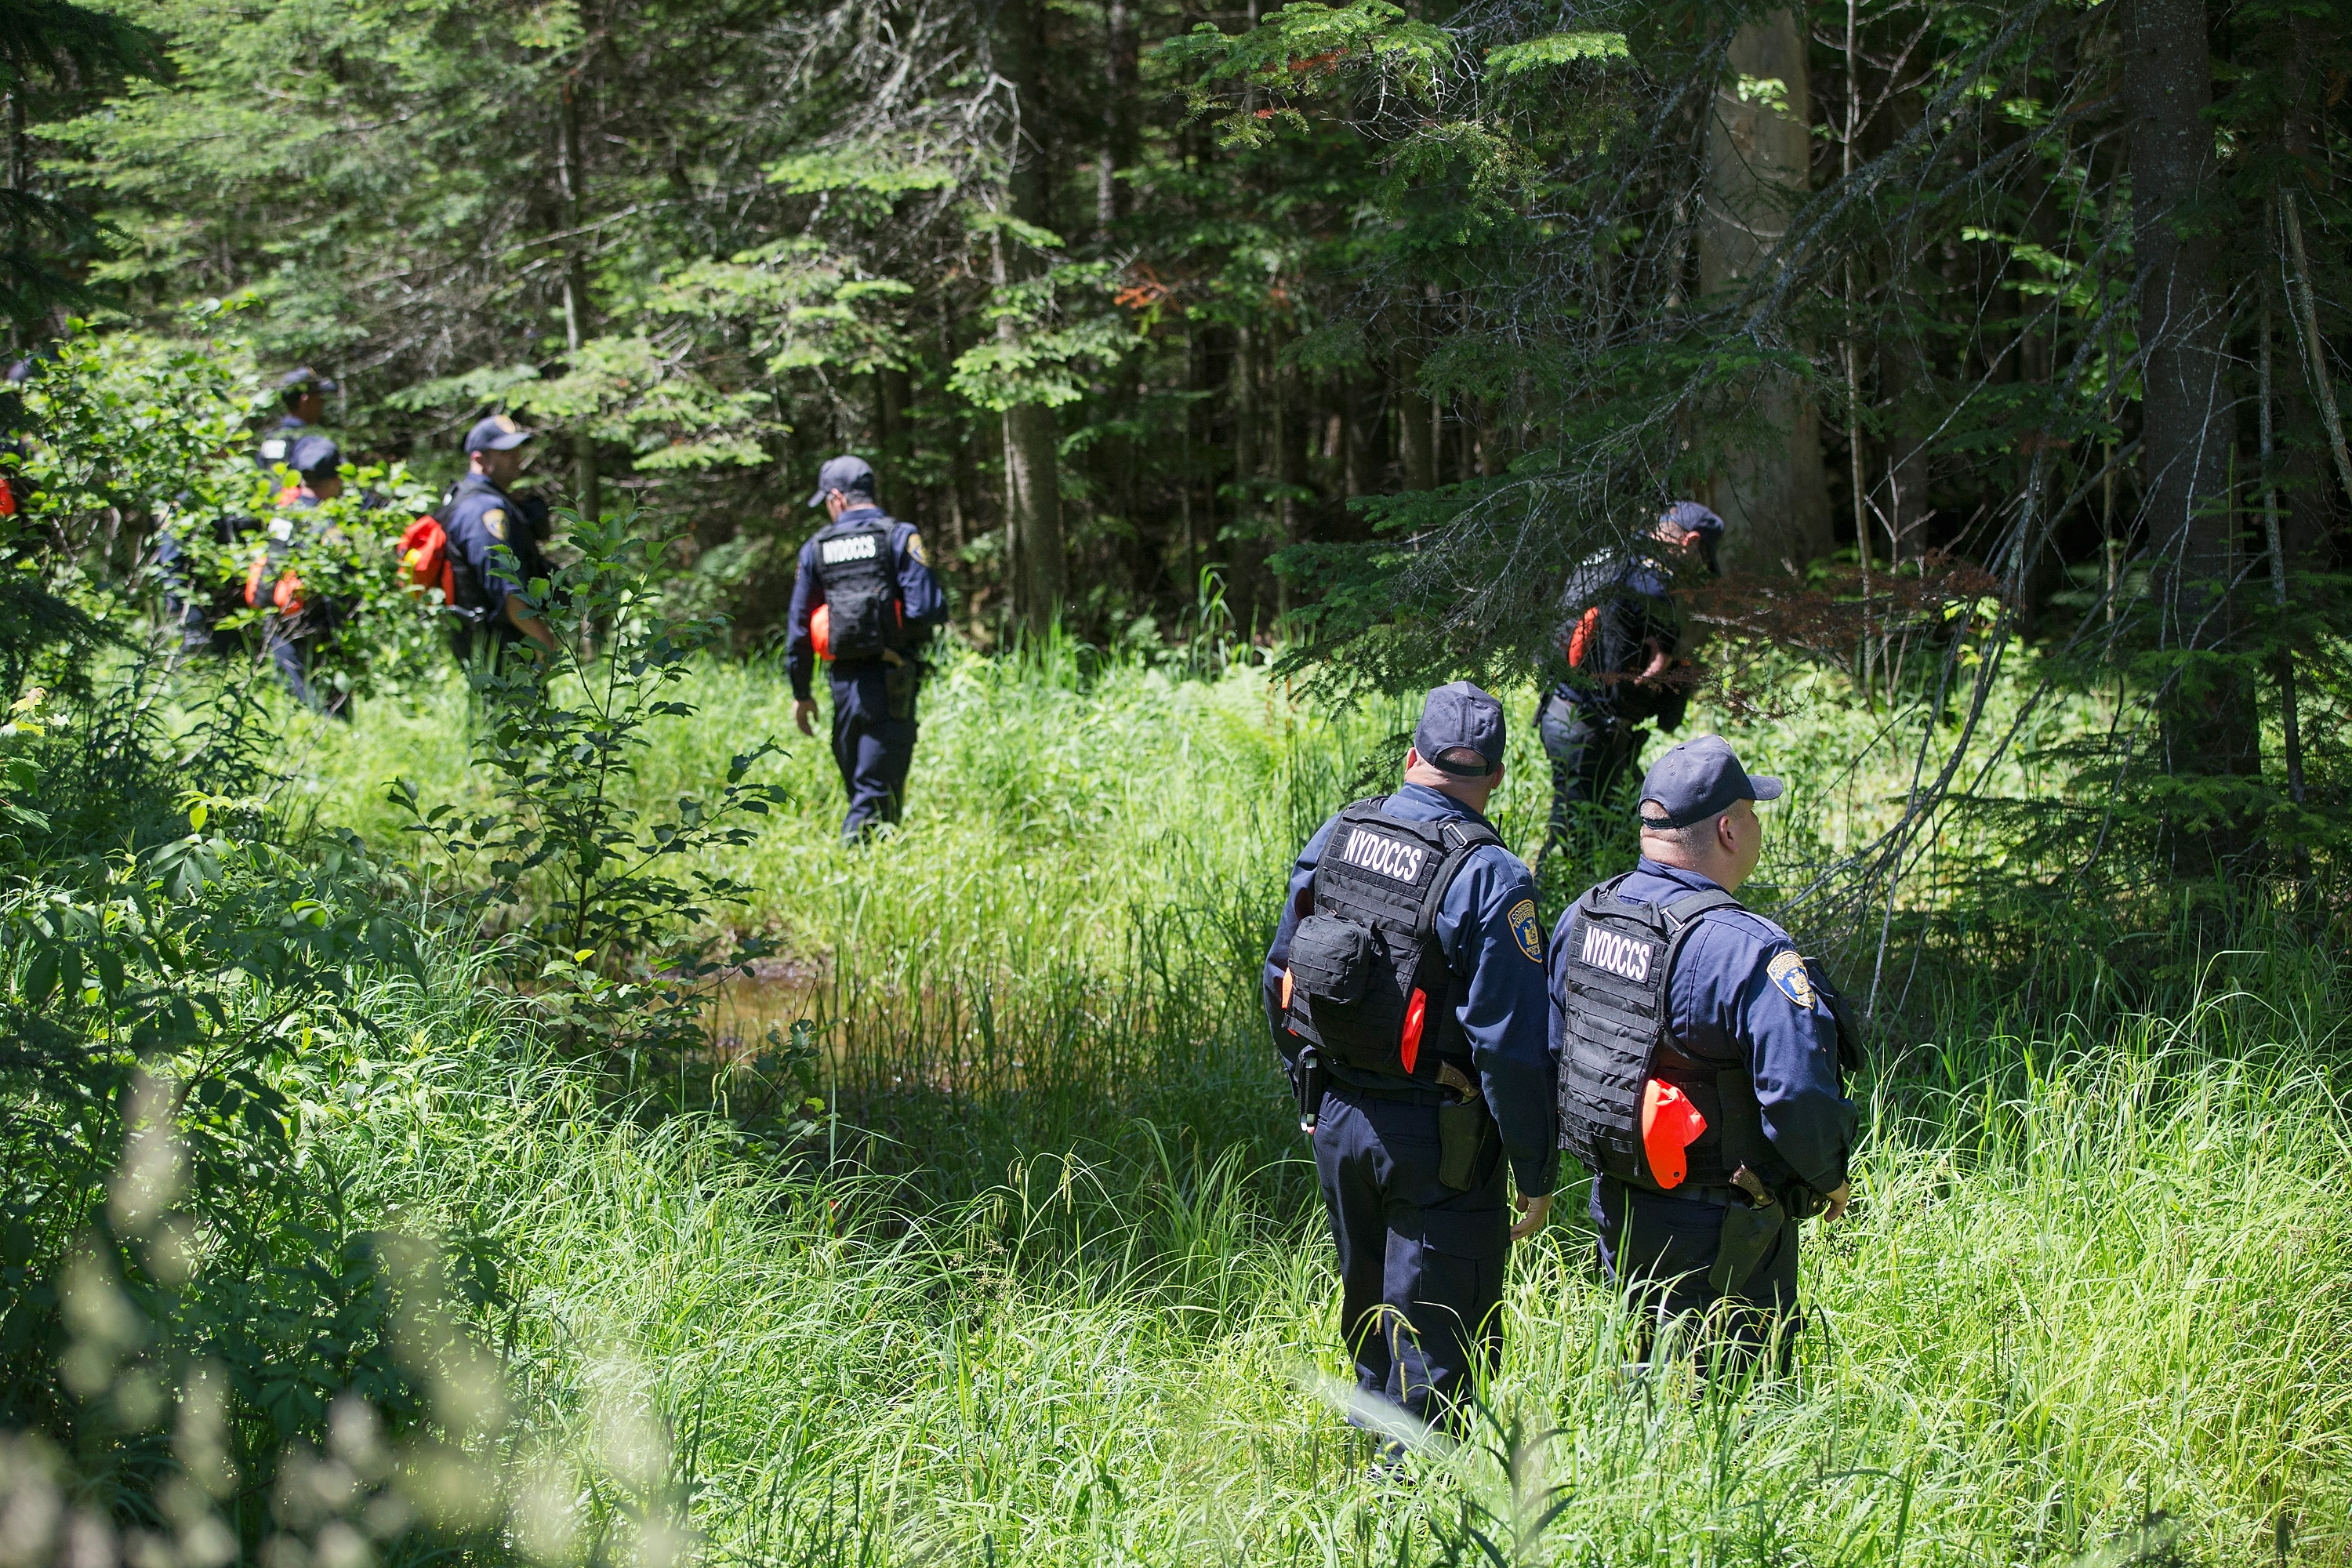 Law enforcement personel search a wooded area Thursday as the manhunt for convicted murderers Richard Matt and David Sweat continued near Mountain View. (Getty Images)